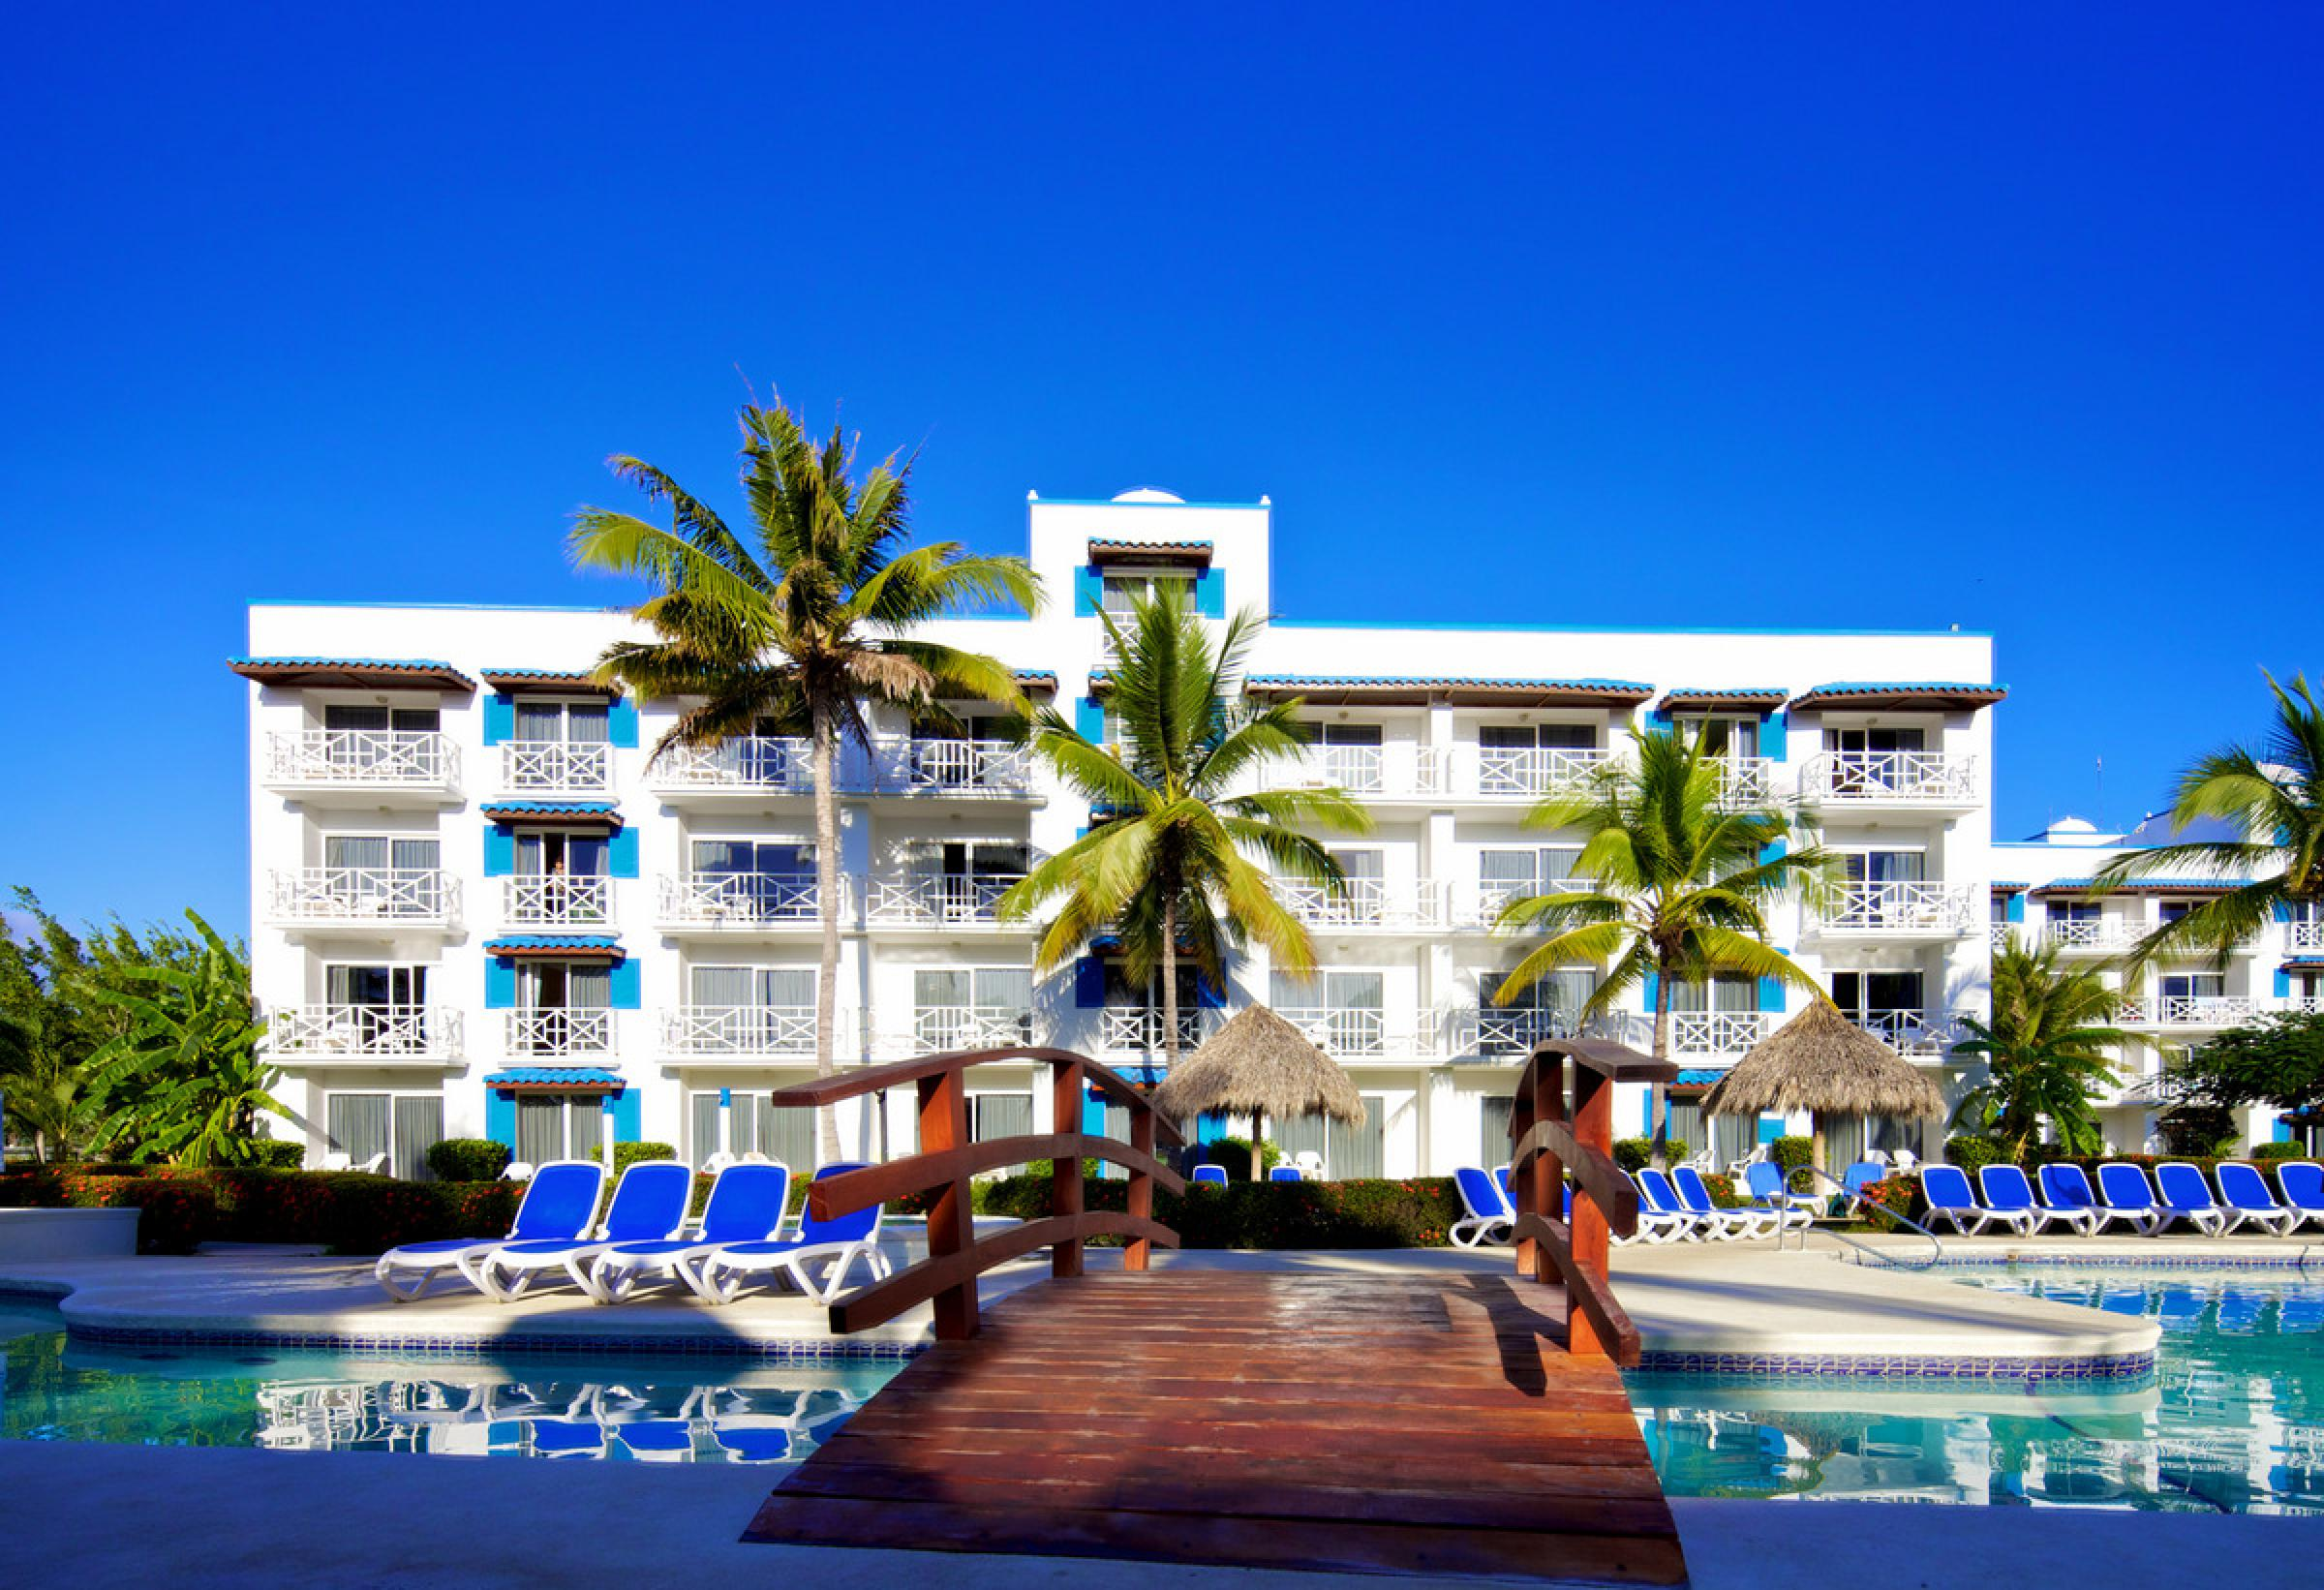 Playa Blanca Beach Resort